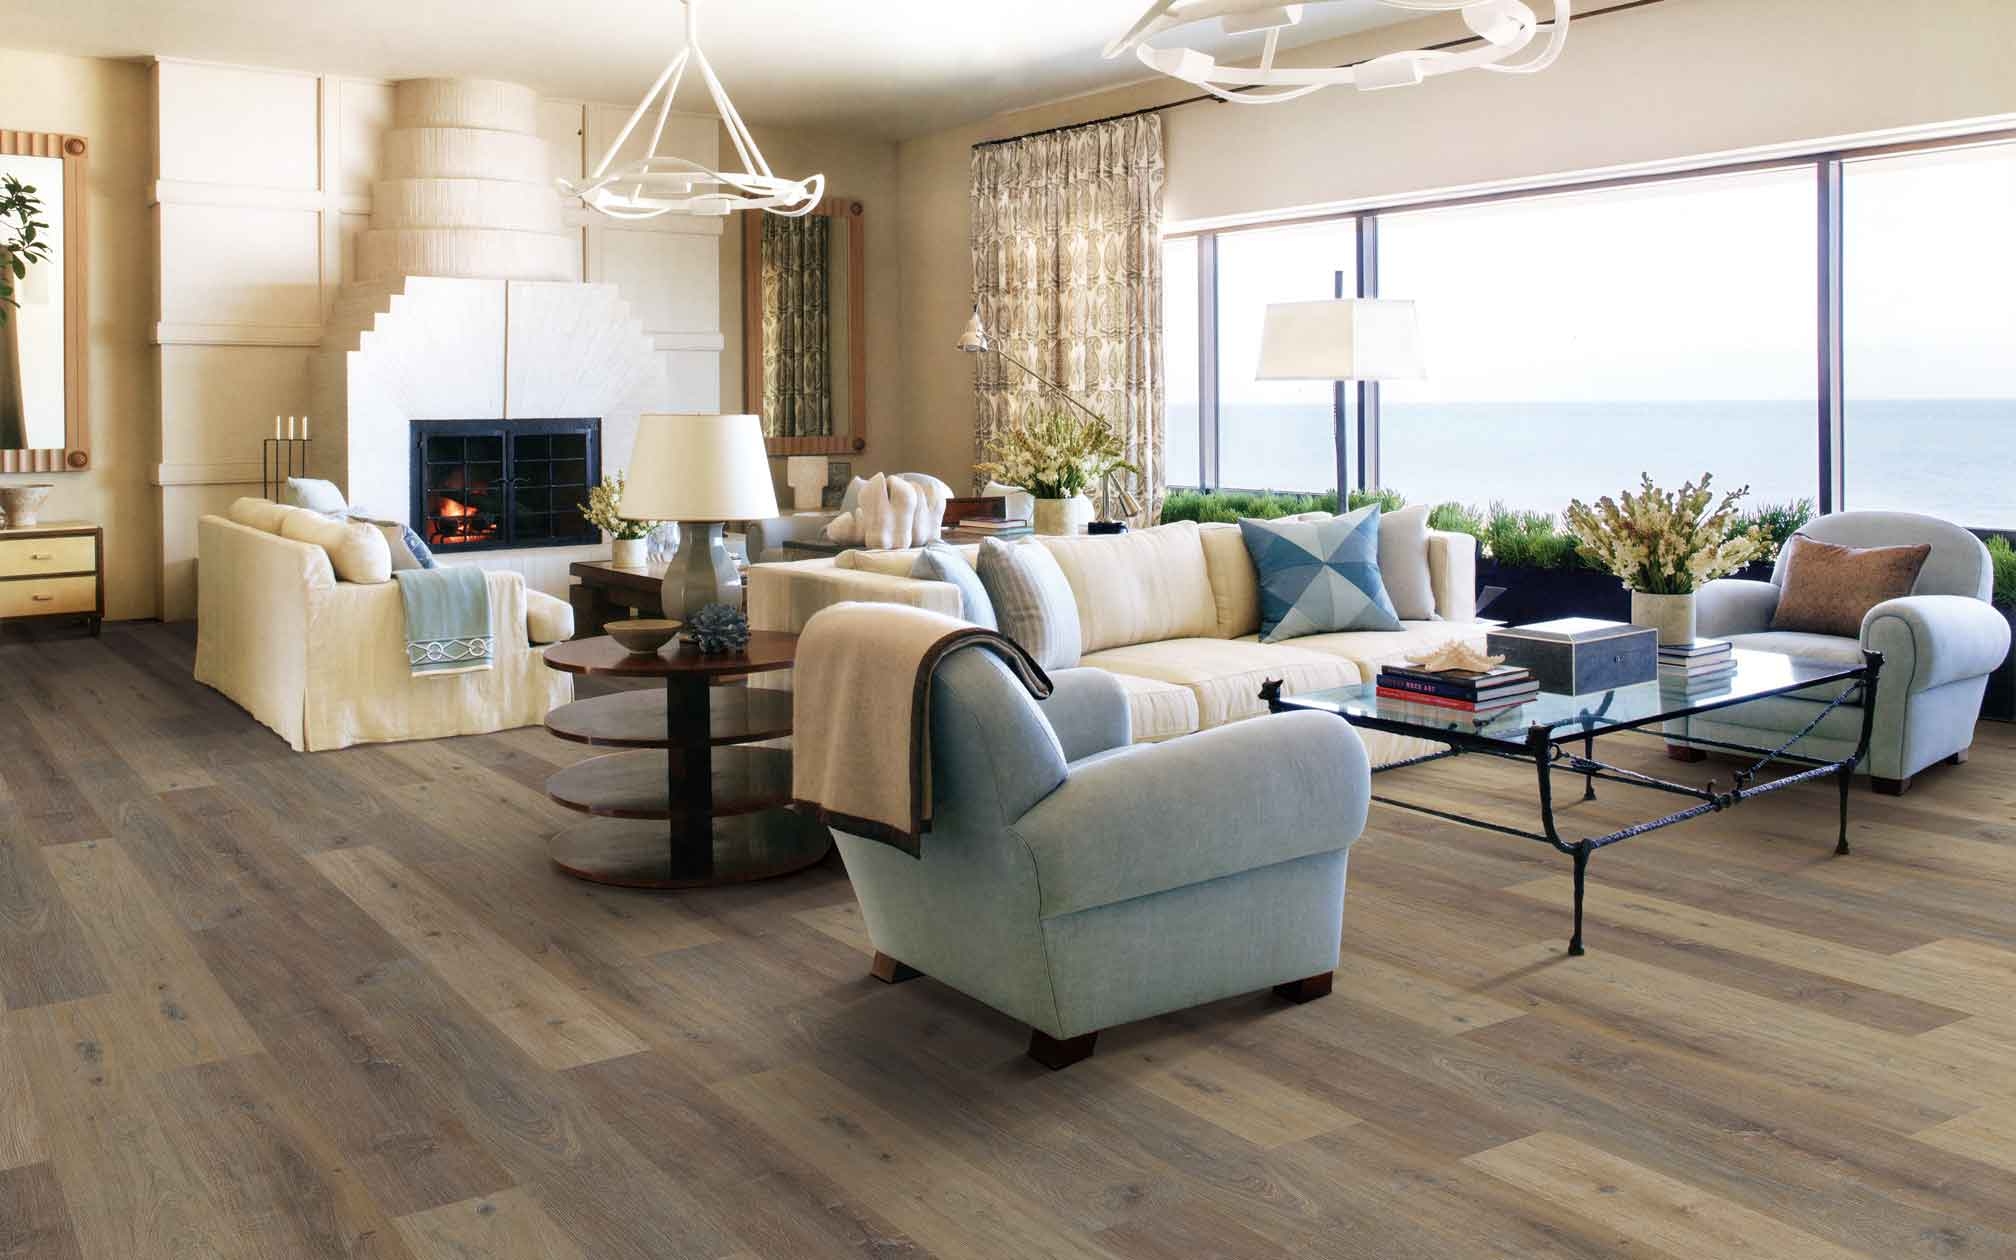 WHAT ARE THE VARIOUS LAMINATE FLOORING OPTIONS TO CHOOSE?